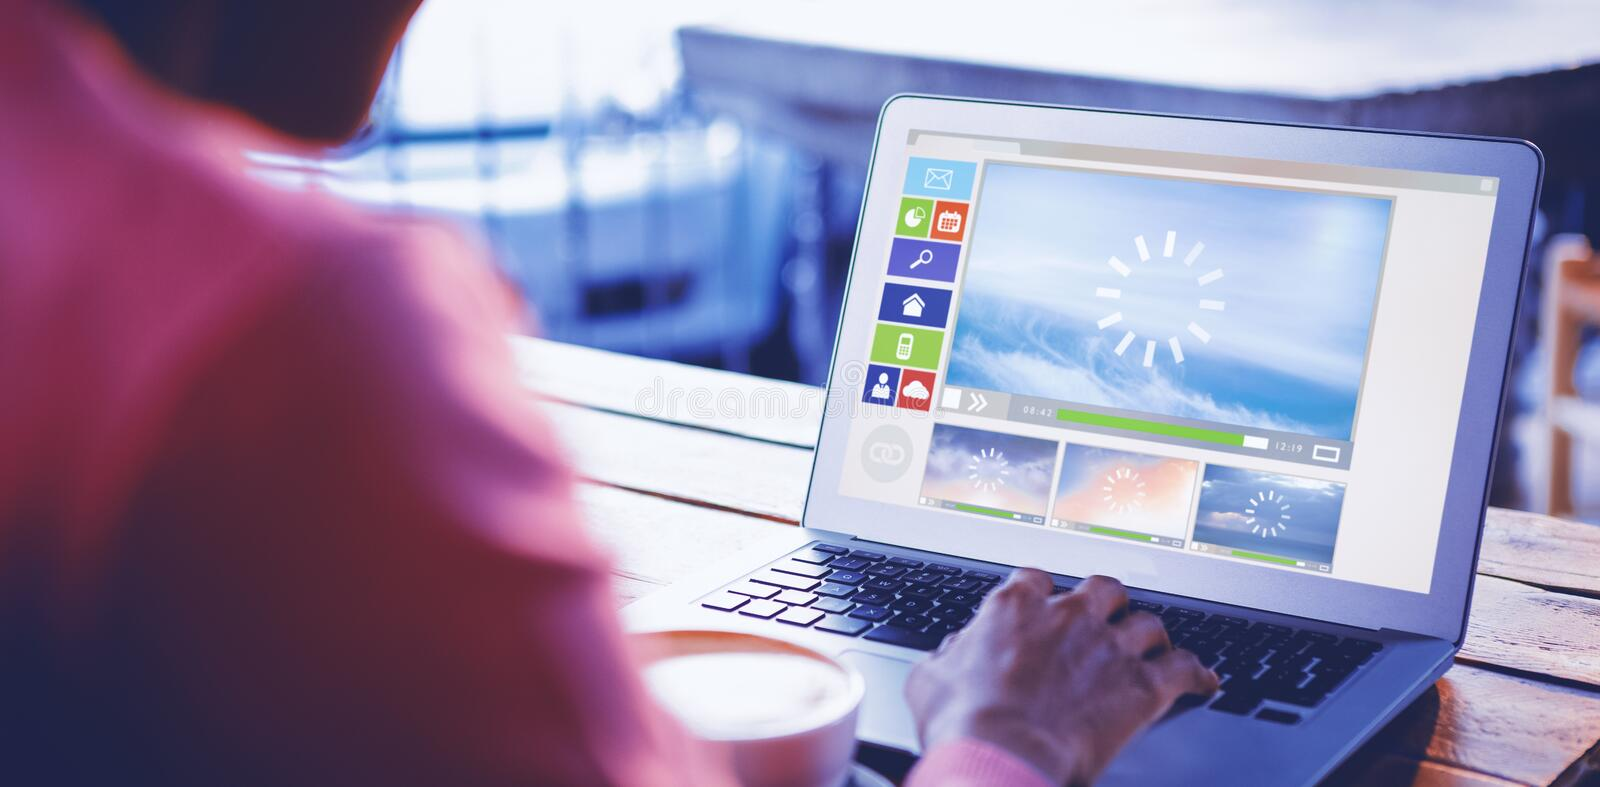 Composite image of illustration of various video and computer icons. Illustration of various video and computer icons against woman using laptop in cafe royalty free stock photos